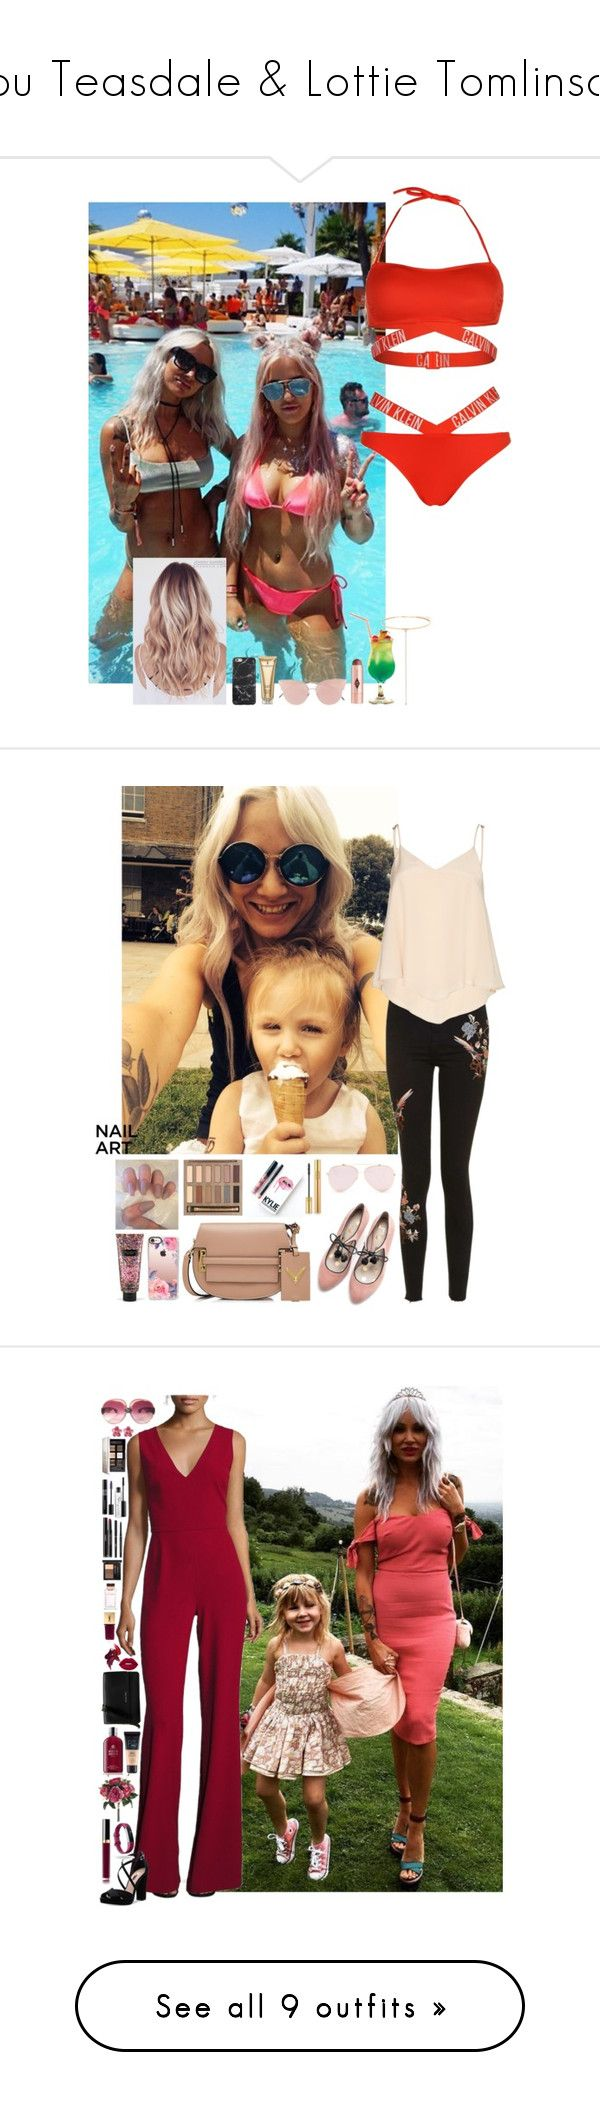 """""""Lou Teasdale & Lottie Tomlinson"""" by ambere3love34 ❤ liked on Polyvore featuring louteasdale, LottieTomlinson, polyvoresets, fashionsets, 2018, Calvin Klein, Charlotte Tilbury, So.Ya, Shay and Elizabeth Arden"""